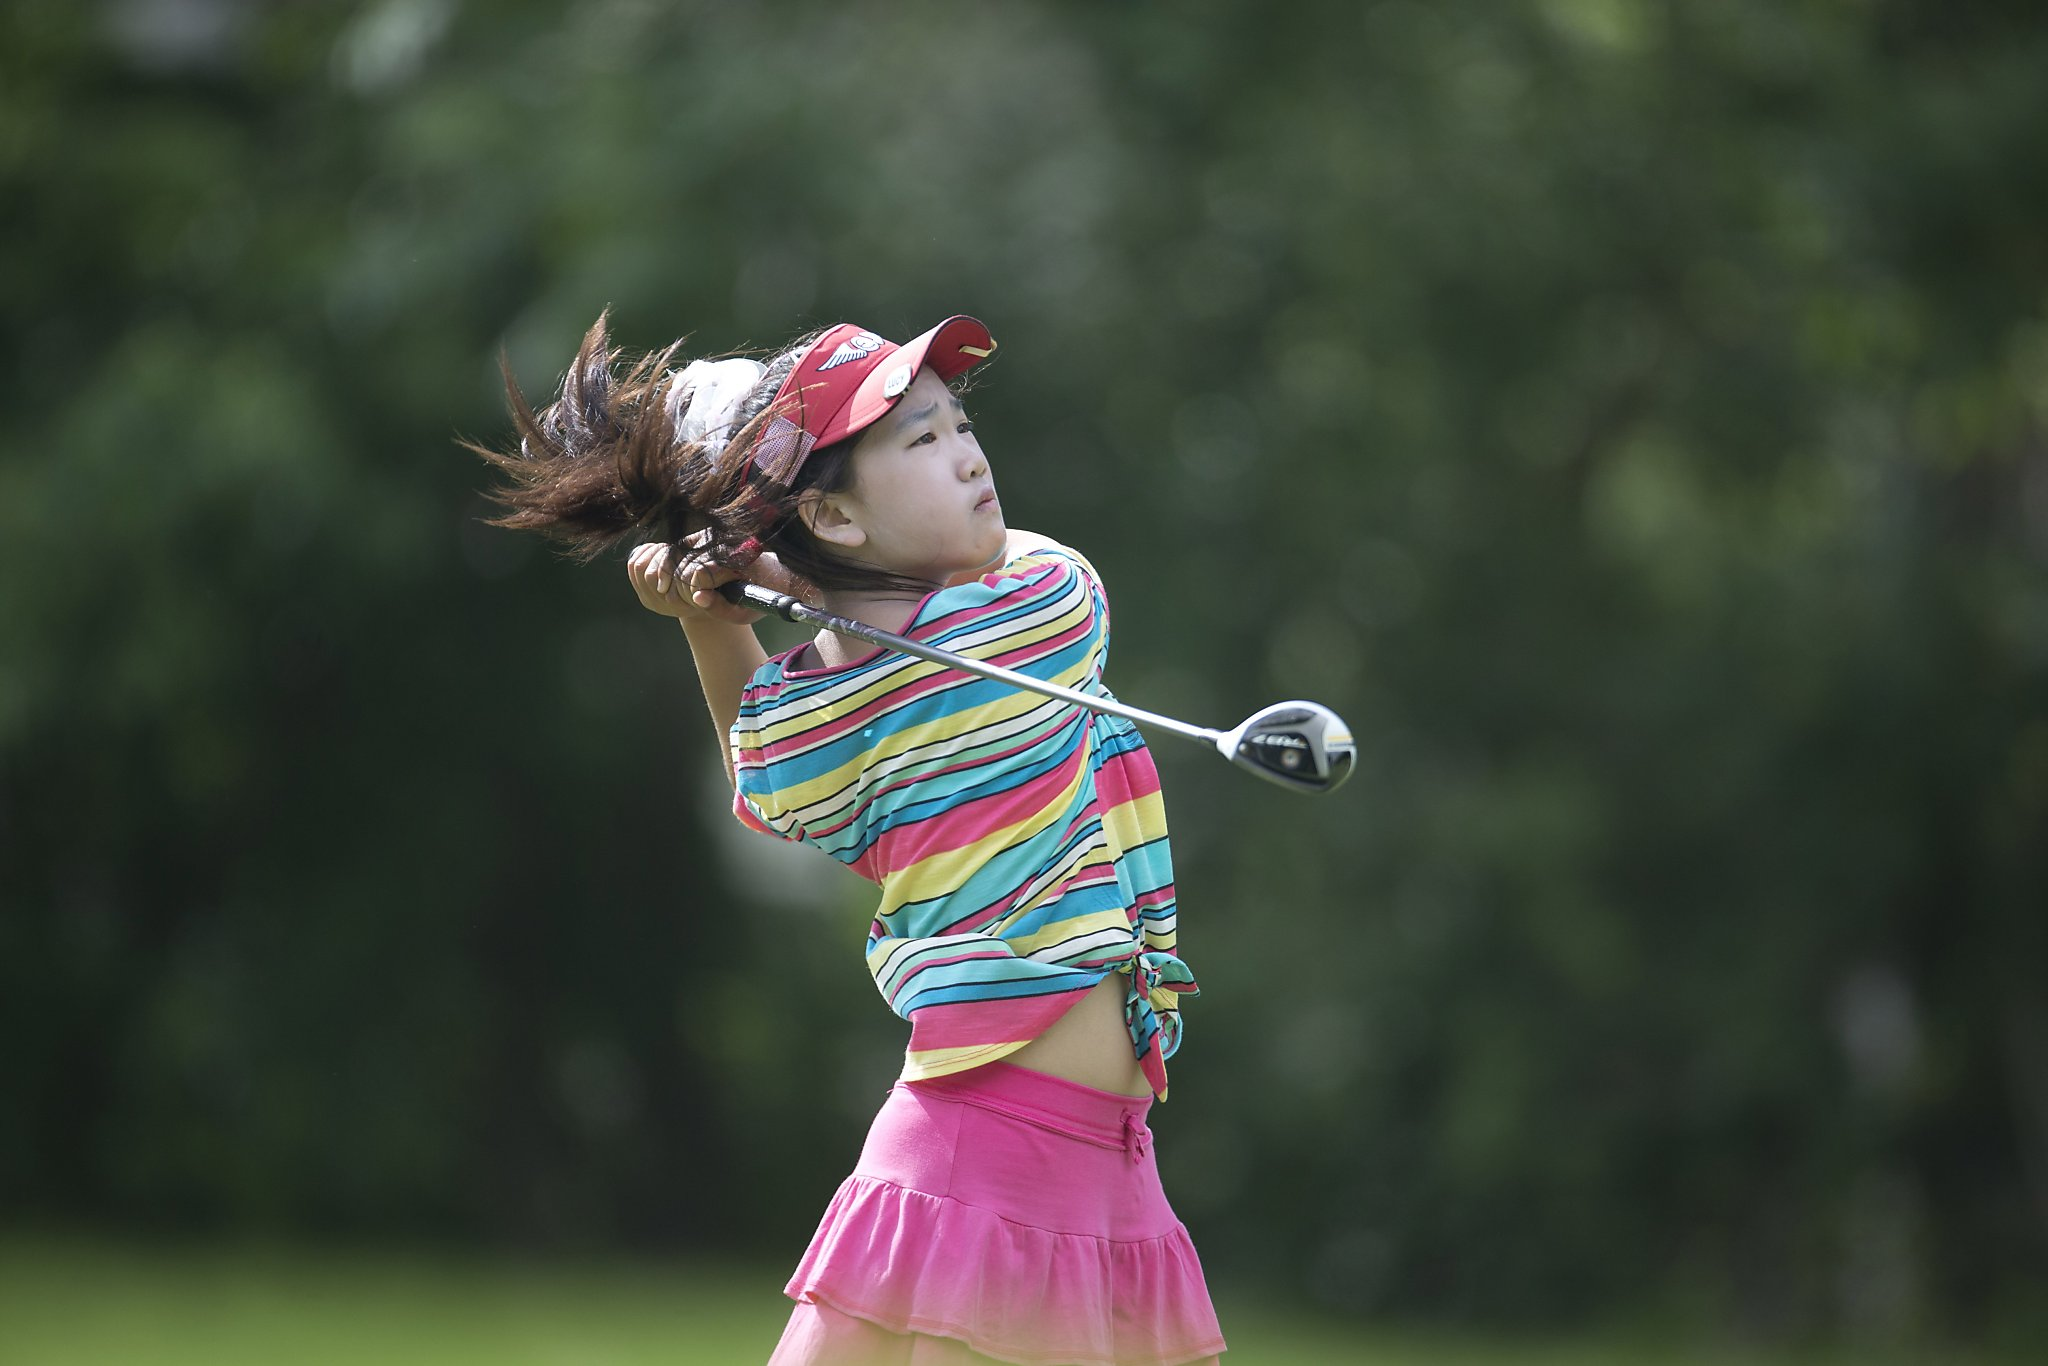 11 Year Old Golf Prodigy Lucy Li Seizes Slice Of History   SFGate